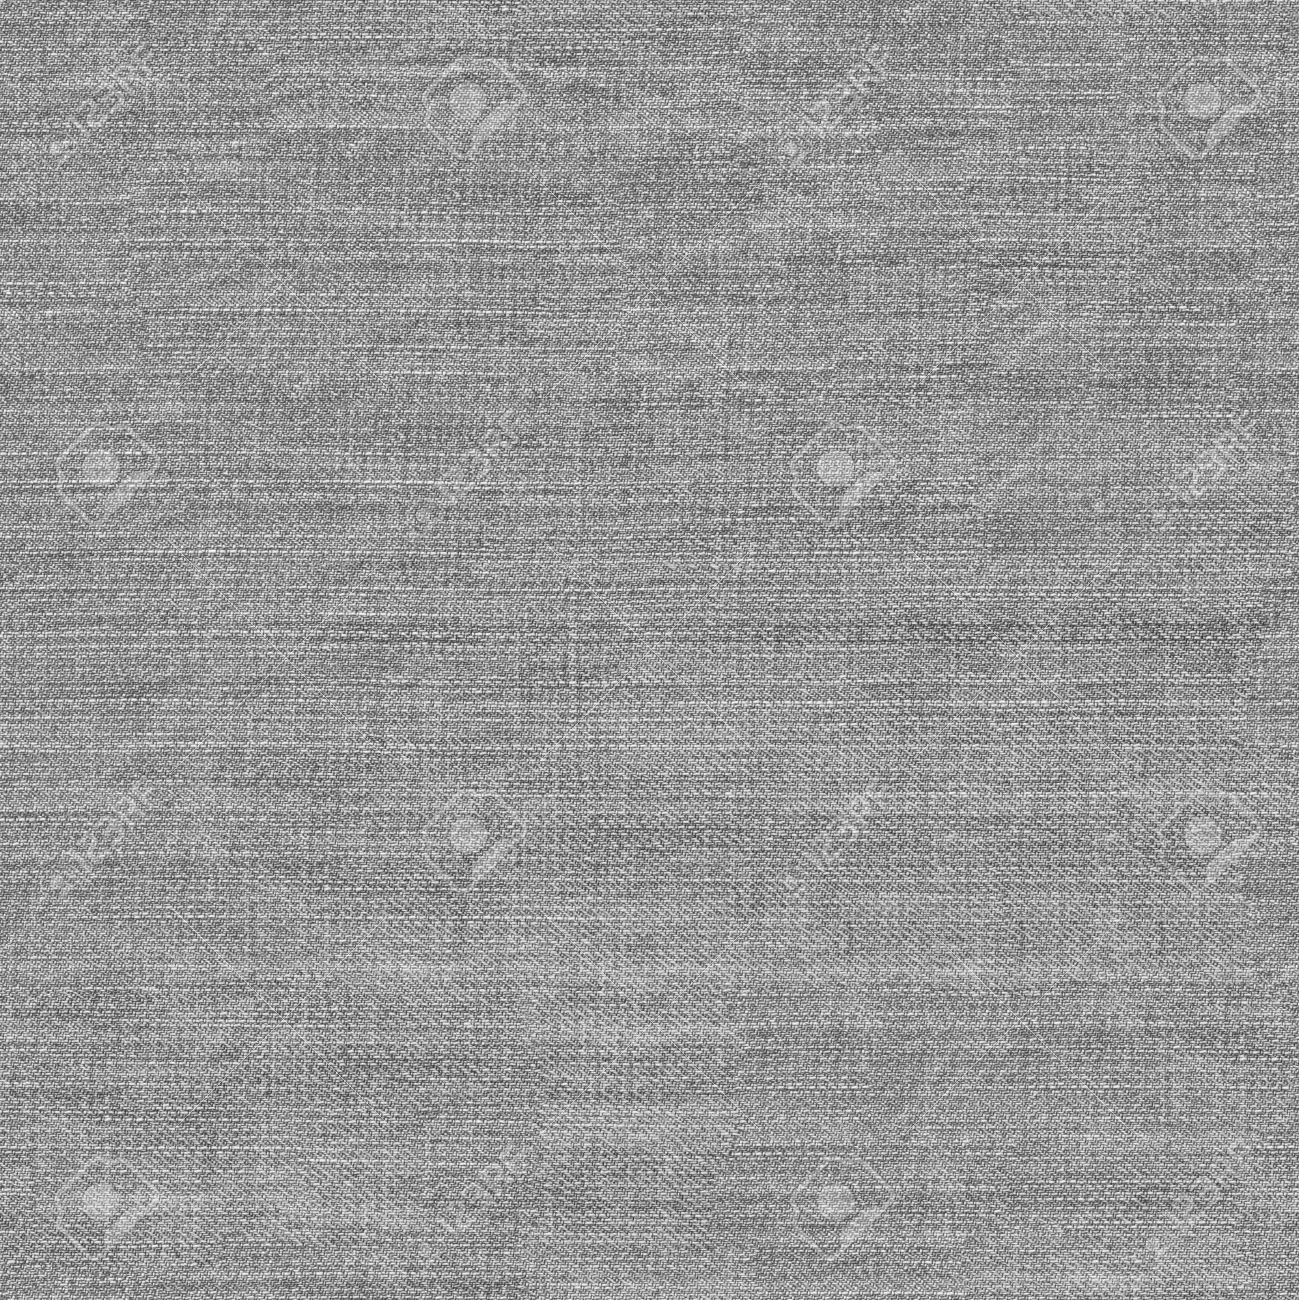 Seamless Texture of Gray Textile  Retro Textile Beckground Stock Photo - 16881225